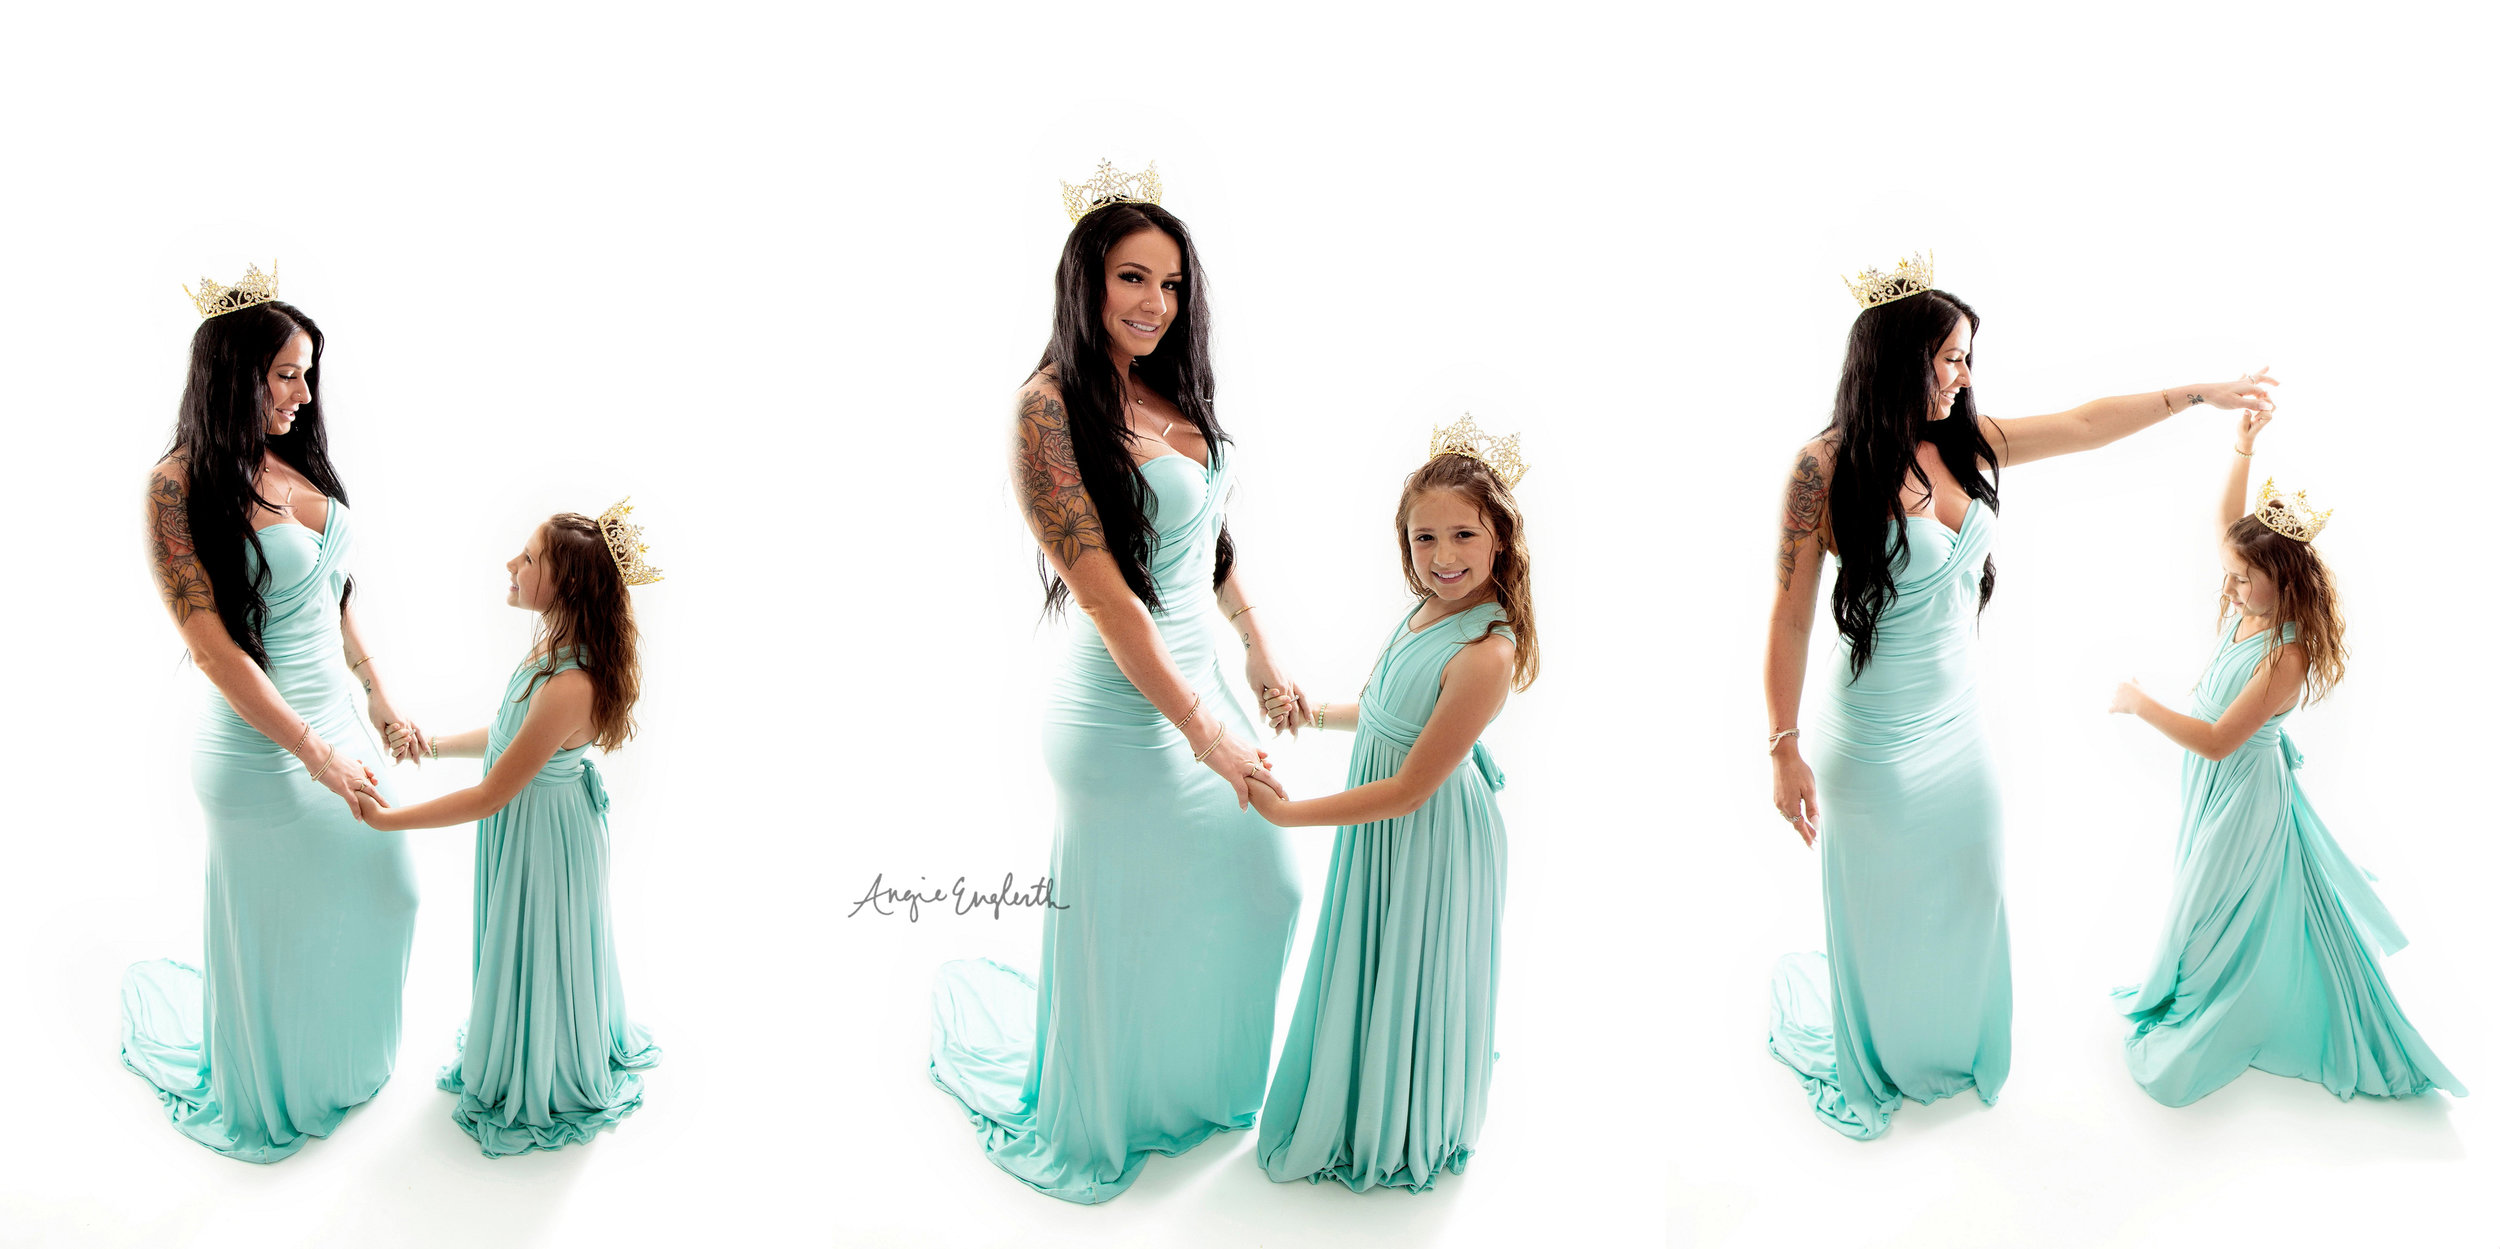 Lancaster_Family_Photographer_Angie_Englerth_Mommy_and_Me_G007.jpg